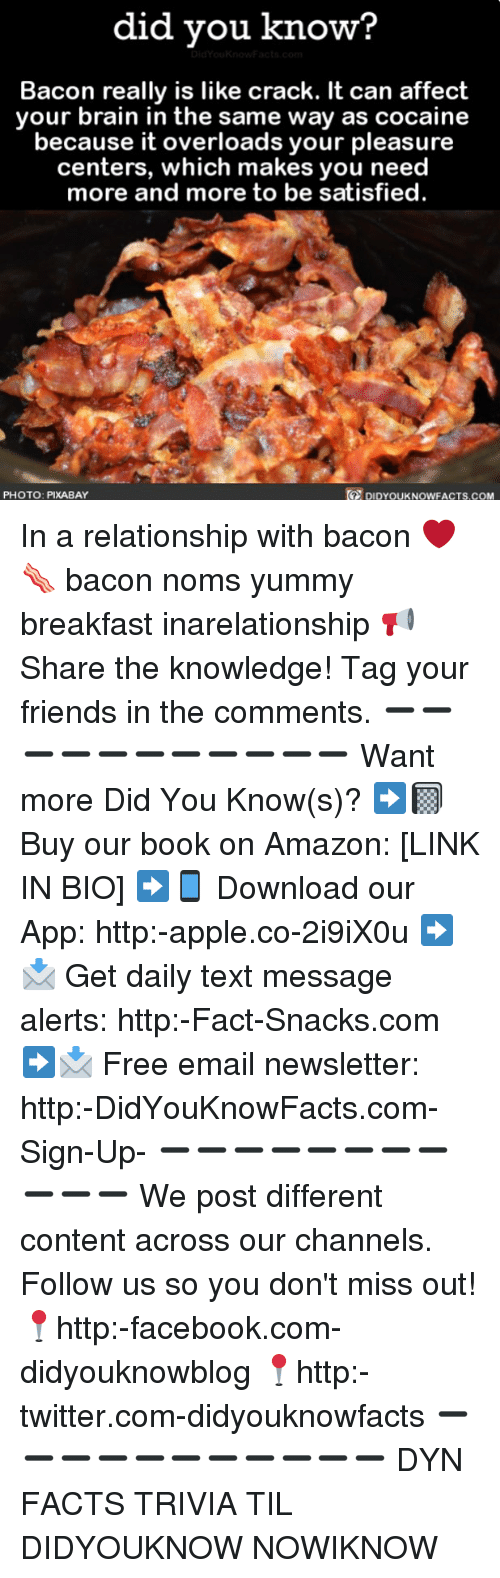 affectation: did vou know?  Bacon really is like crack. It can affect  your brain in the same way as cocaine  because it overloads your pleasure  centers, which makes you need  more and more to be satisfied  te  PHOTO: PIXABAY  DIDYOUKNOWFACTS.COM In a relationship with bacon ❤️🥓 bacon noms yummy breakfast inarelationship 📢 Share the knowledge! Tag your friends in the comments. ➖➖➖➖➖➖➖➖➖➖➖ Want more Did You Know(s)? ➡📓 Buy our book on Amazon: [LINK IN BIO] ➡📱 Download our App: http:-apple.co-2i9iX0u ➡📩 Get daily text message alerts: http:-Fact-Snacks.com ➡📩 Free email newsletter: http:-DidYouKnowFacts.com-Sign-Up- ➖➖➖➖➖➖➖➖➖➖➖ We post different content across our channels. Follow us so you don't miss out! 📍http:-facebook.com-didyouknowblog 📍http:-twitter.com-didyouknowfacts ➖➖➖➖➖➖➖➖➖➖➖ DYN FACTS TRIVIA TIL DIDYOUKNOW NOWIKNOW